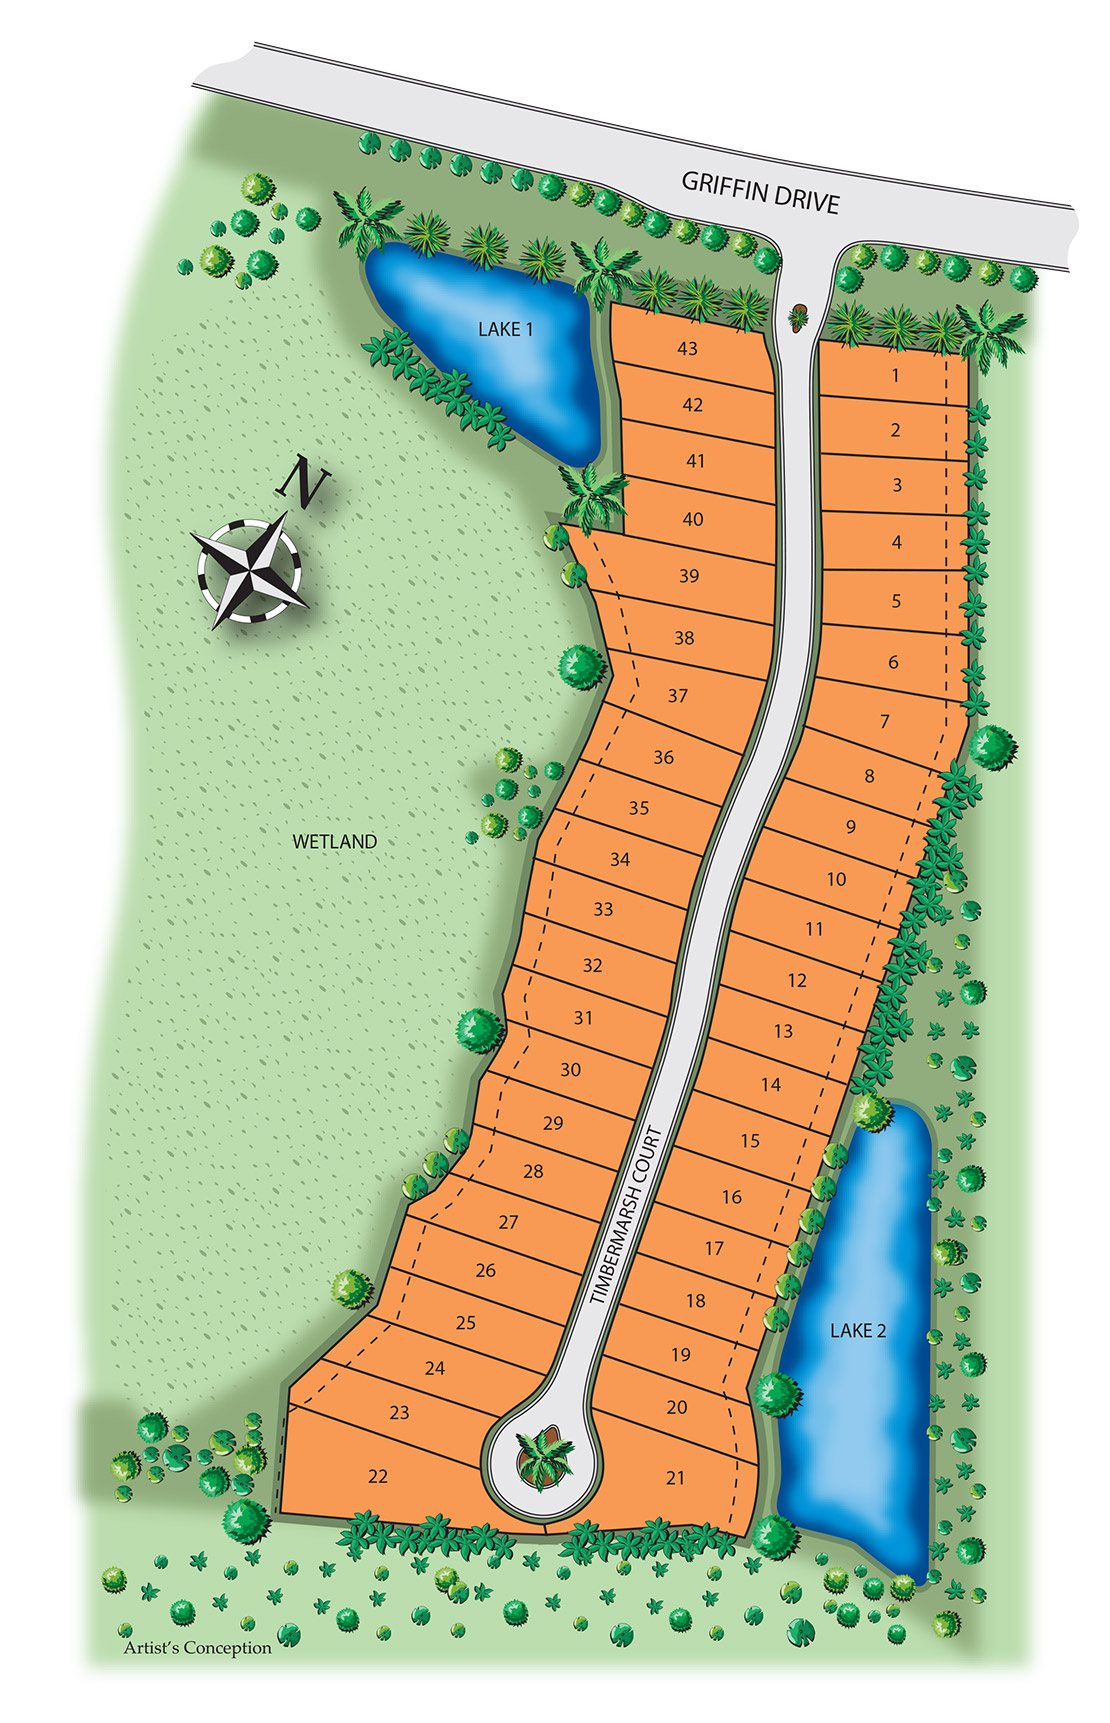 TIMBERWOOD PRESERVE Site Map